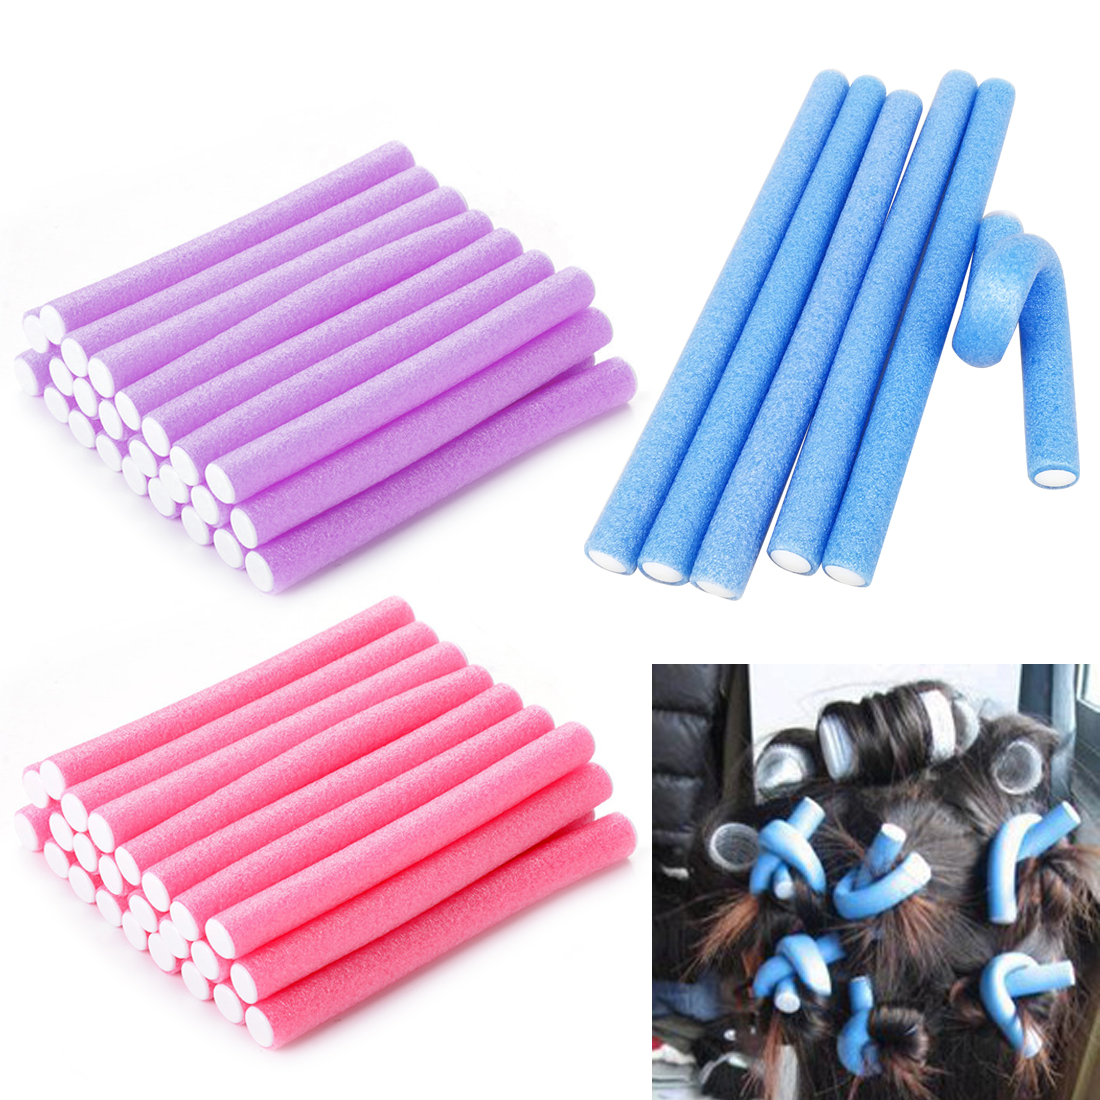 10pcs/Lot Hair Curler Makers Tools Soft Foam Bendy Twist Curls DIY Styling Hair Rollers Tool For Women Hair Accessories